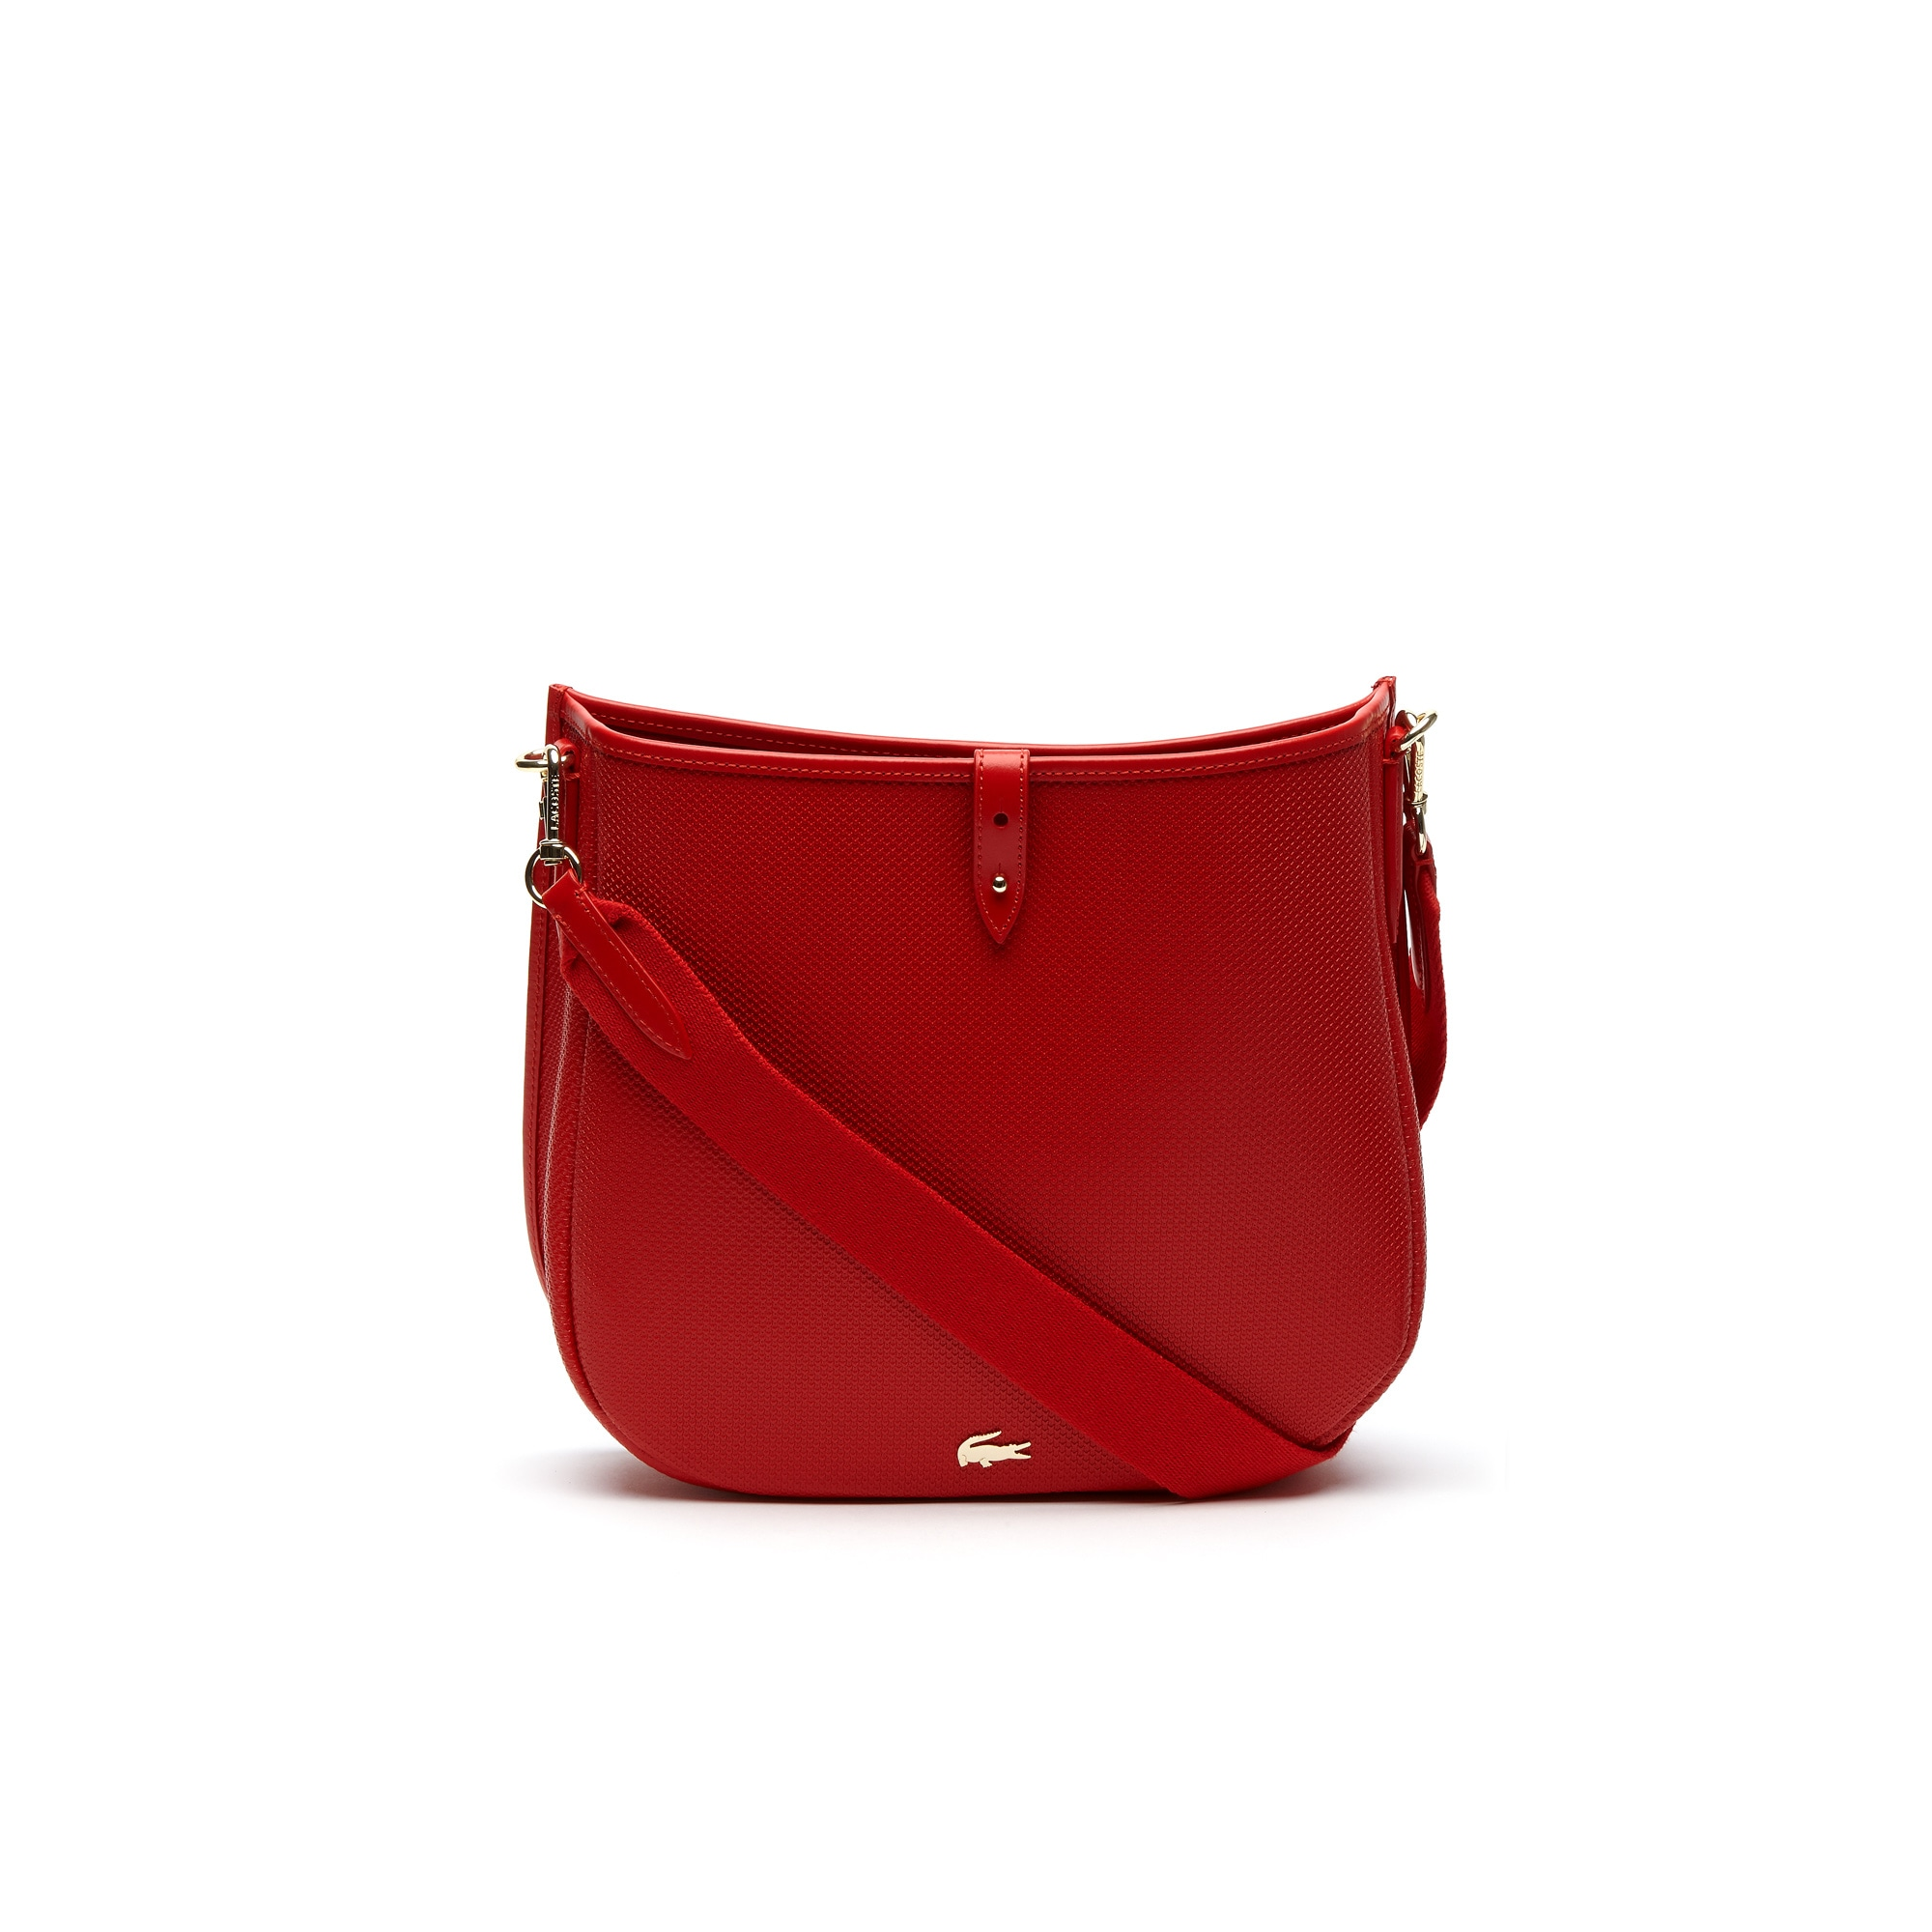 Women s Bags and Leathers Good on Sale   LACOSTE 32e4d03643